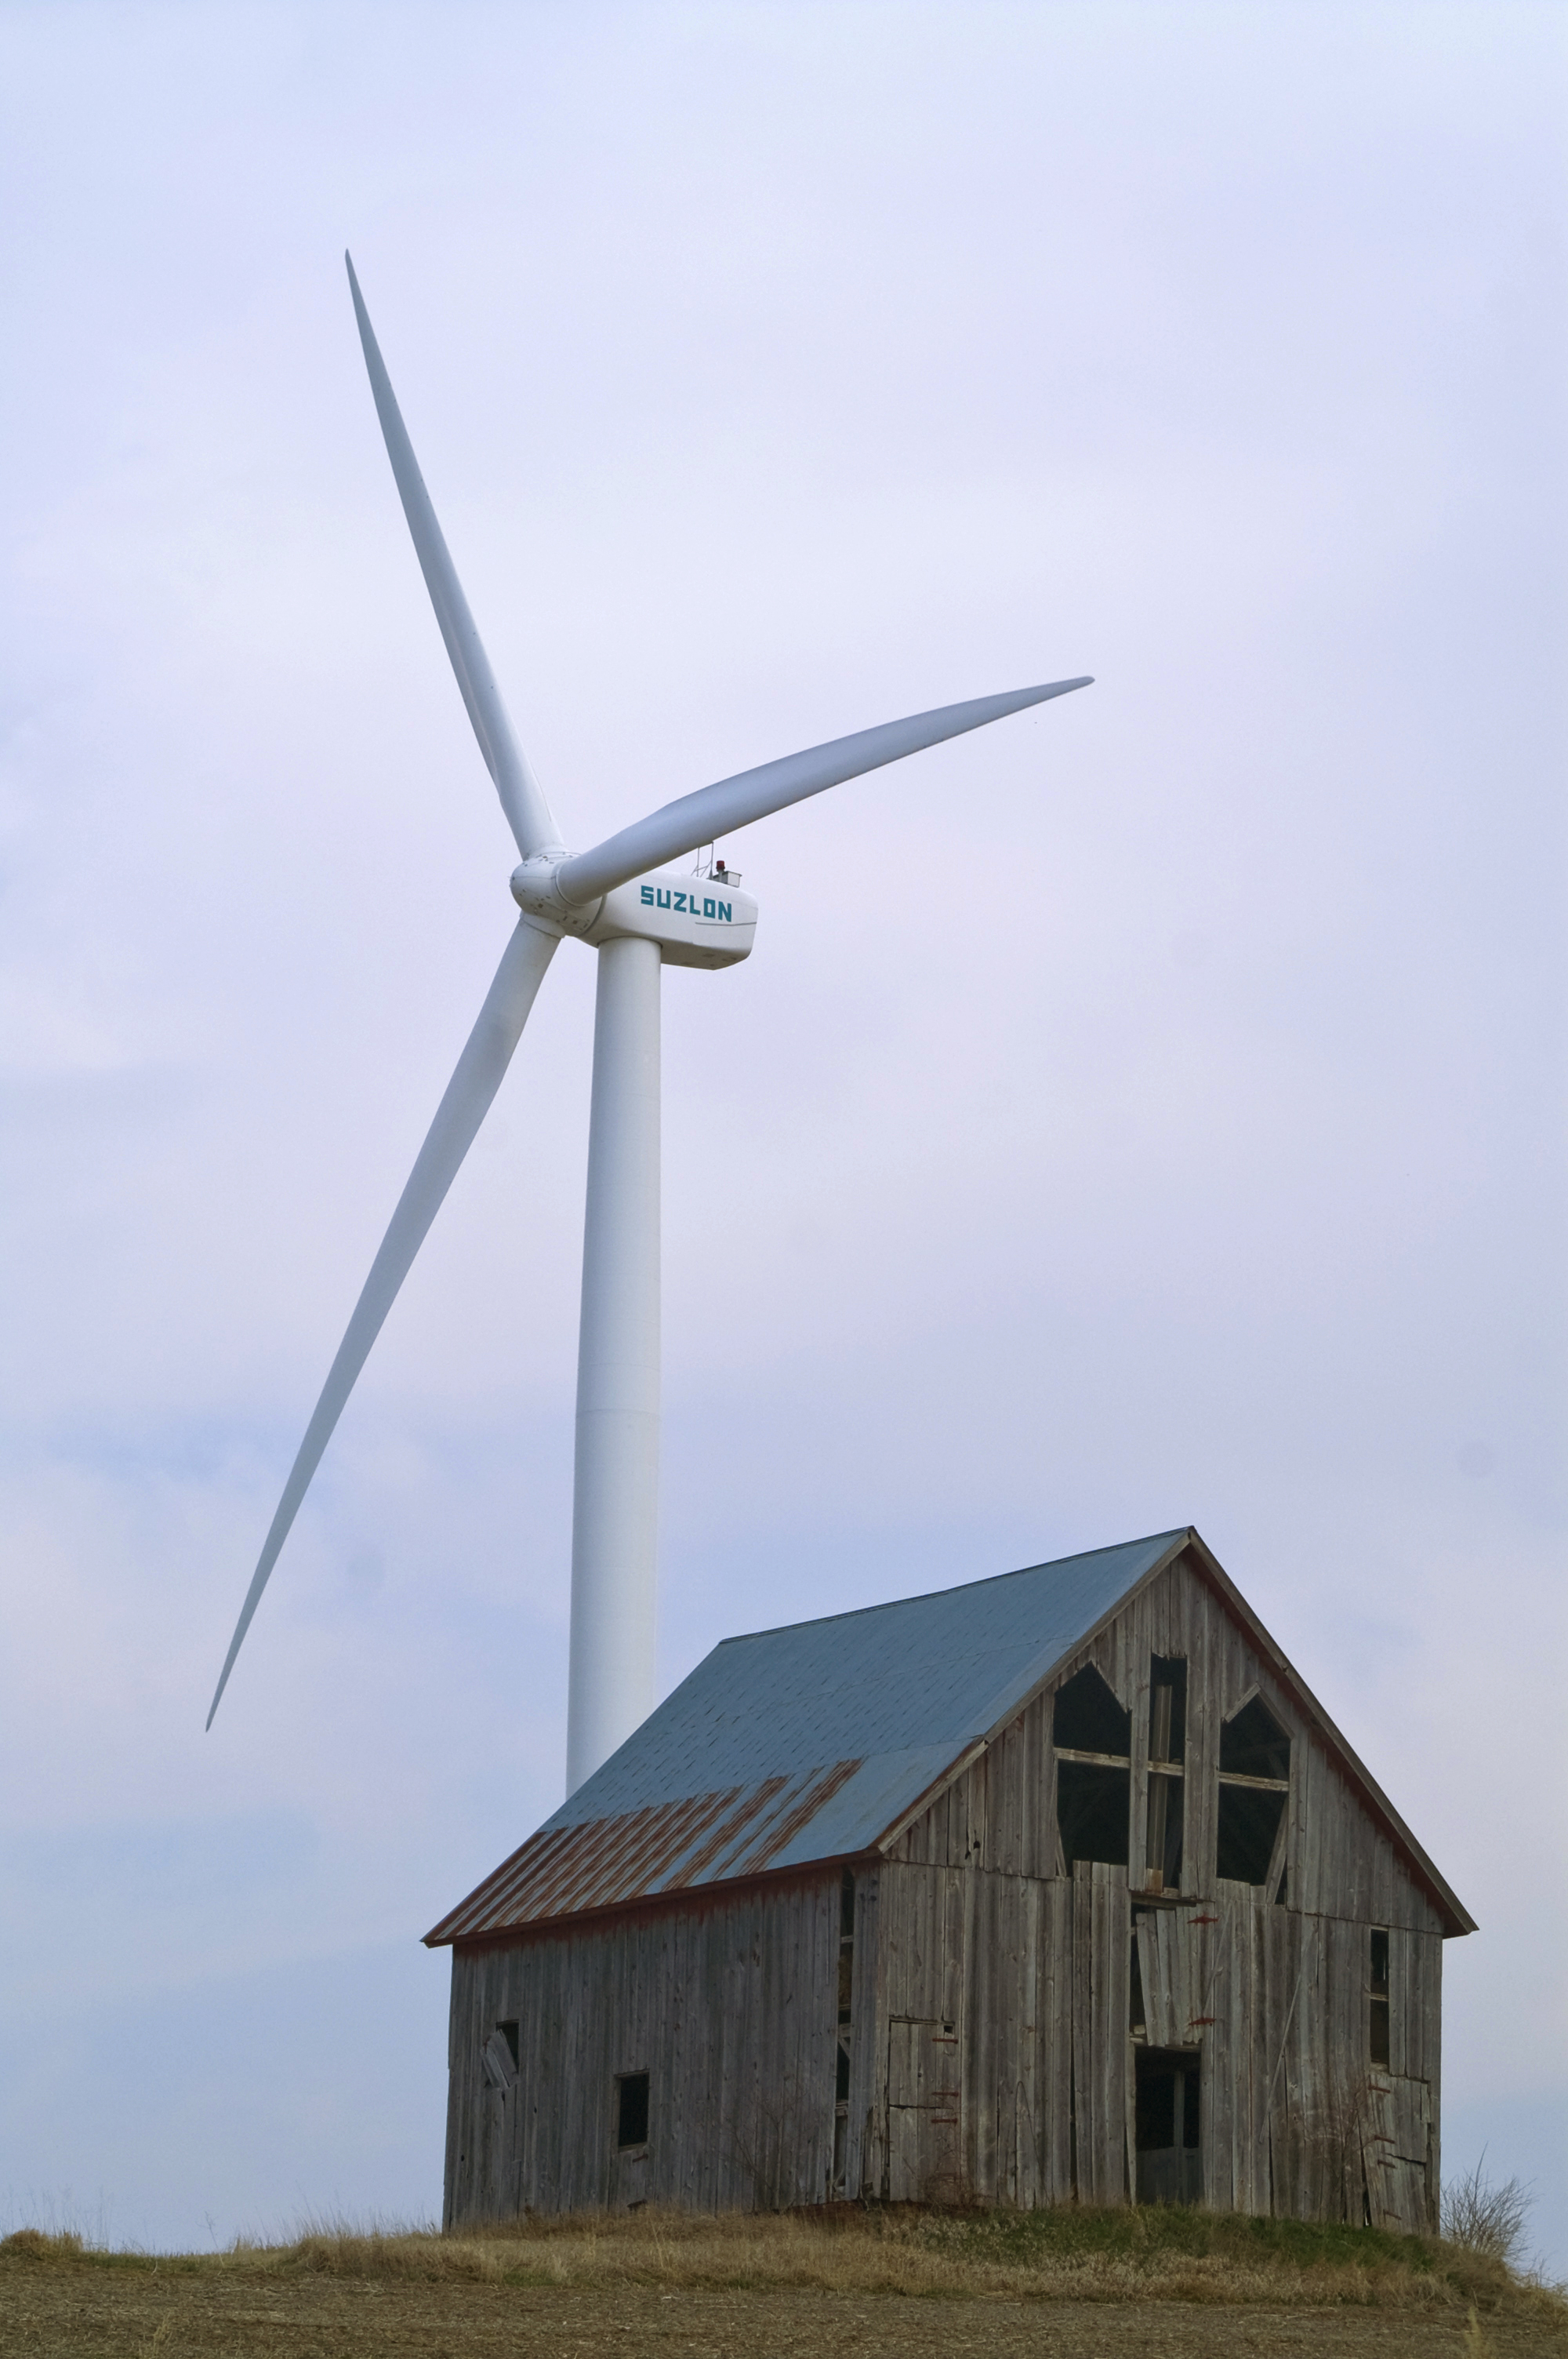 Wind turbine near Rock Port, Missouri.